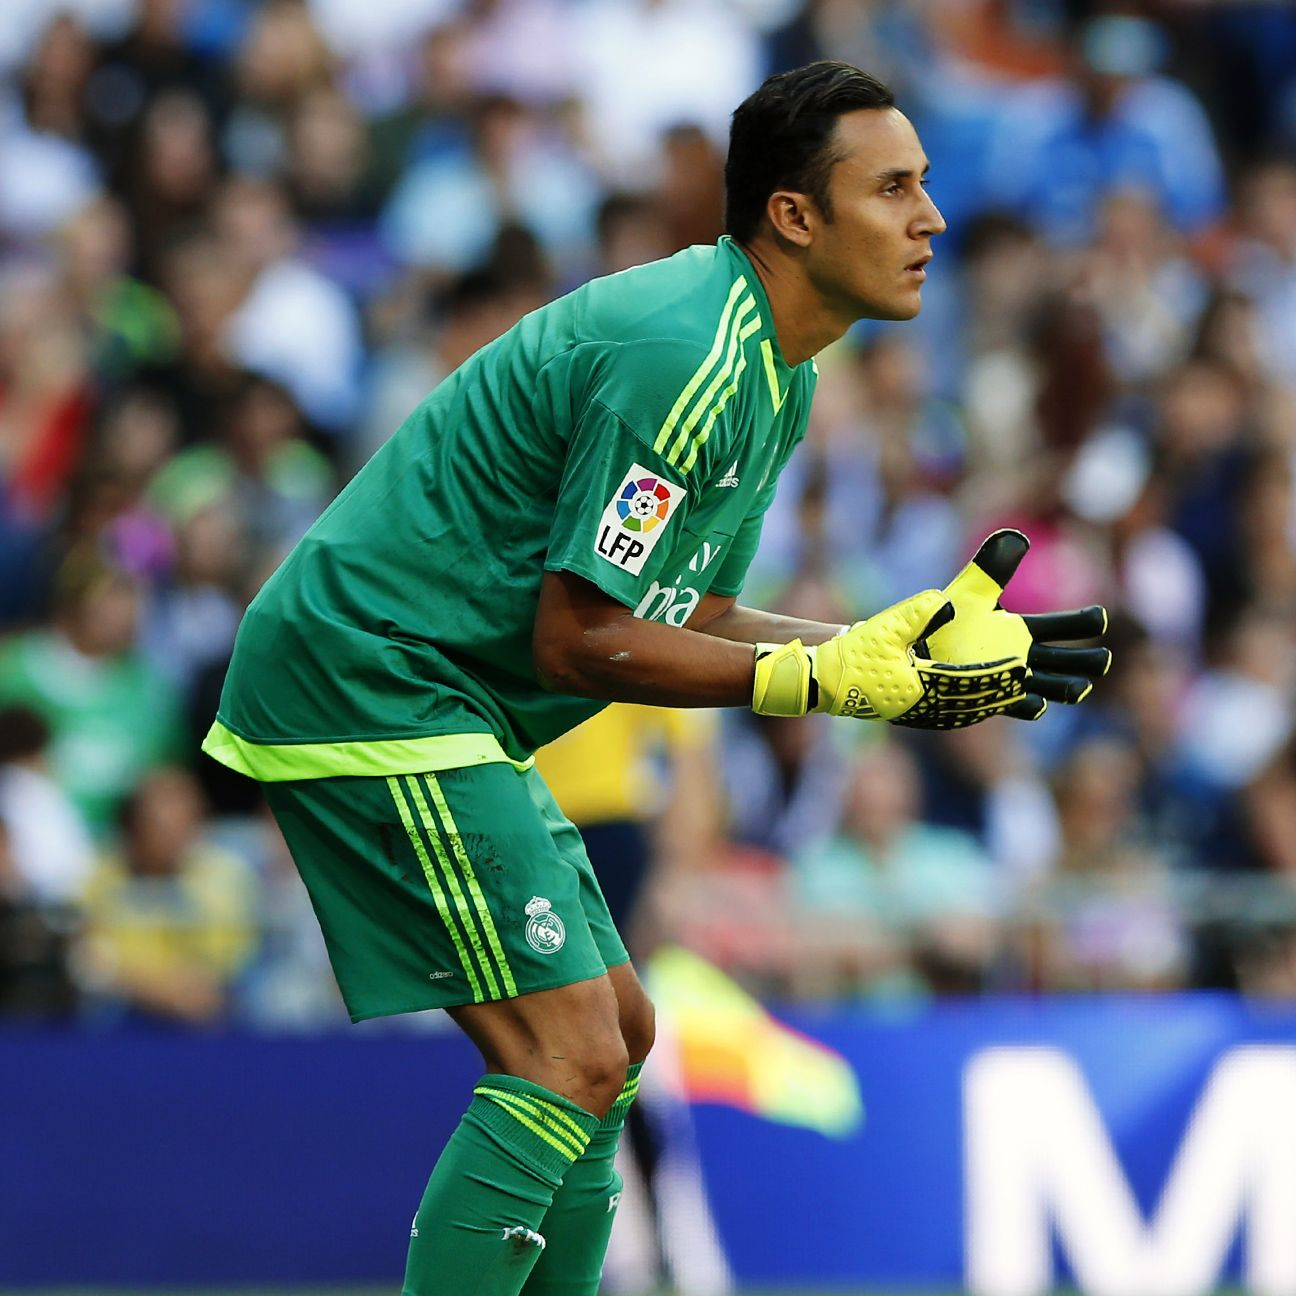 Real Madrid goalkeeper Keylor Navas has yet to concede this season.